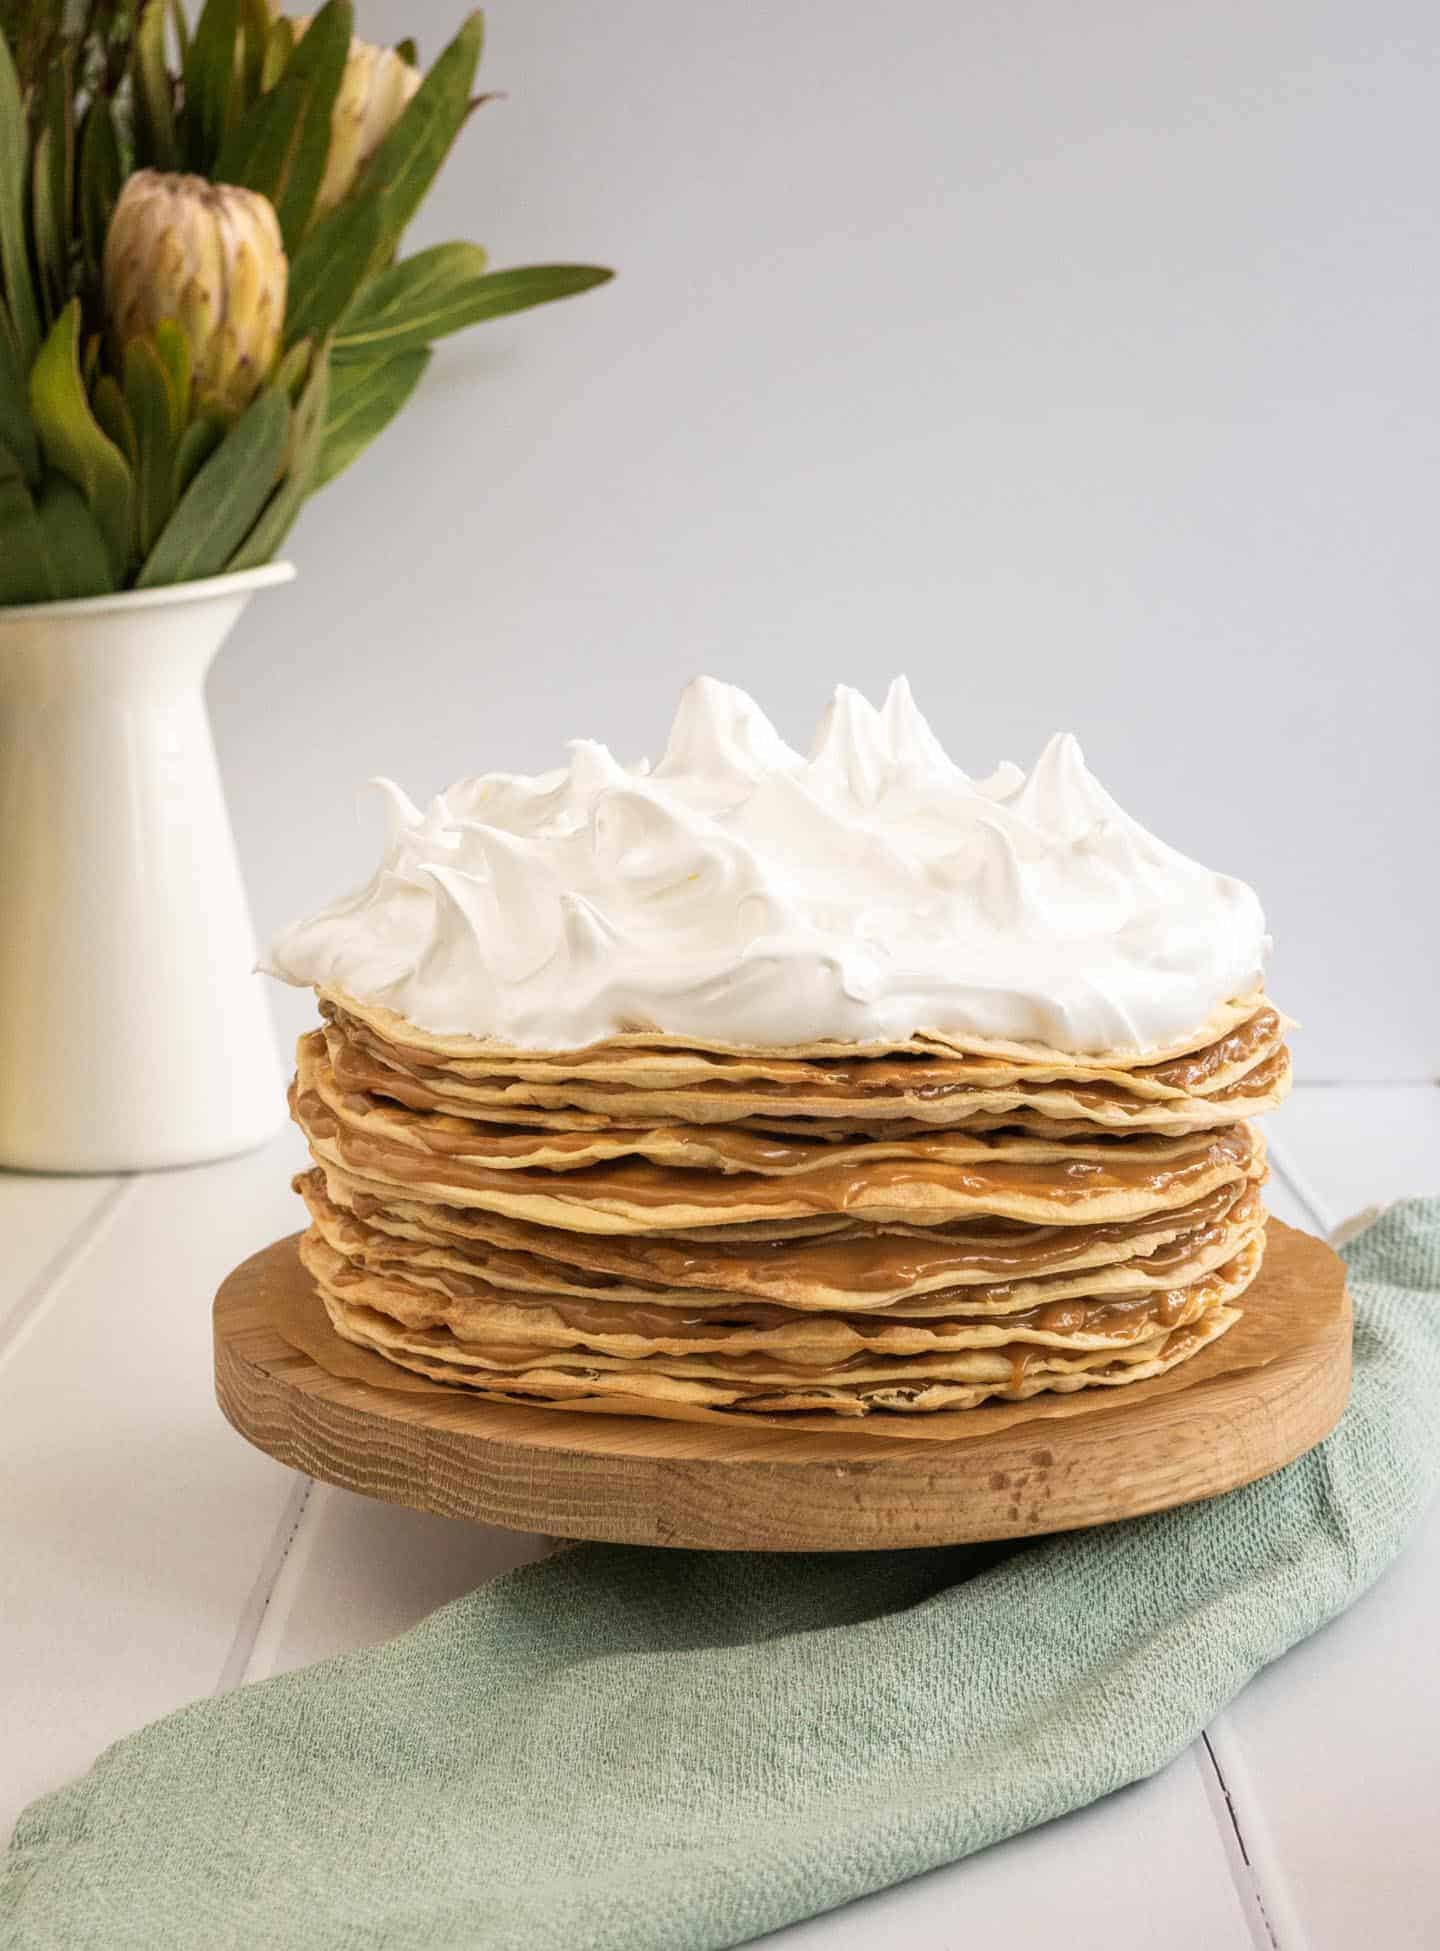 Whole Rogel cake with dulce de leche and meringue